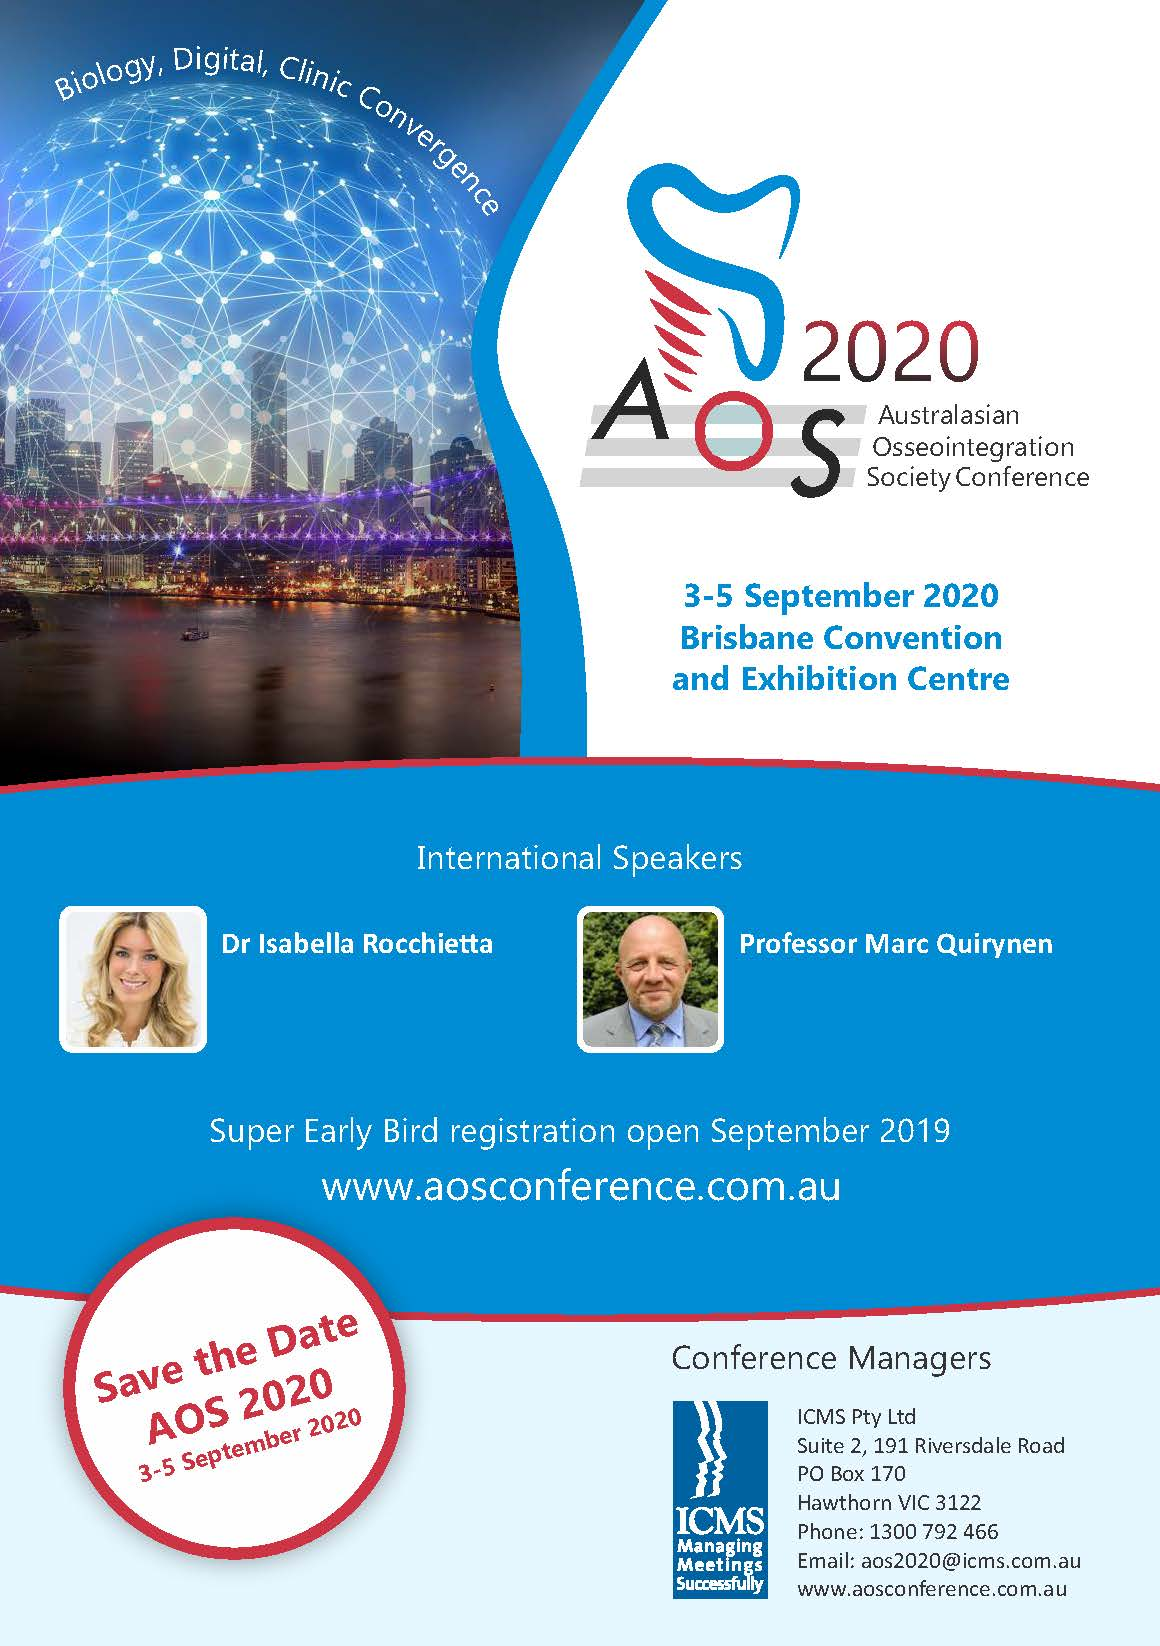 AOS 2020 Biennial Conference - Cancelled